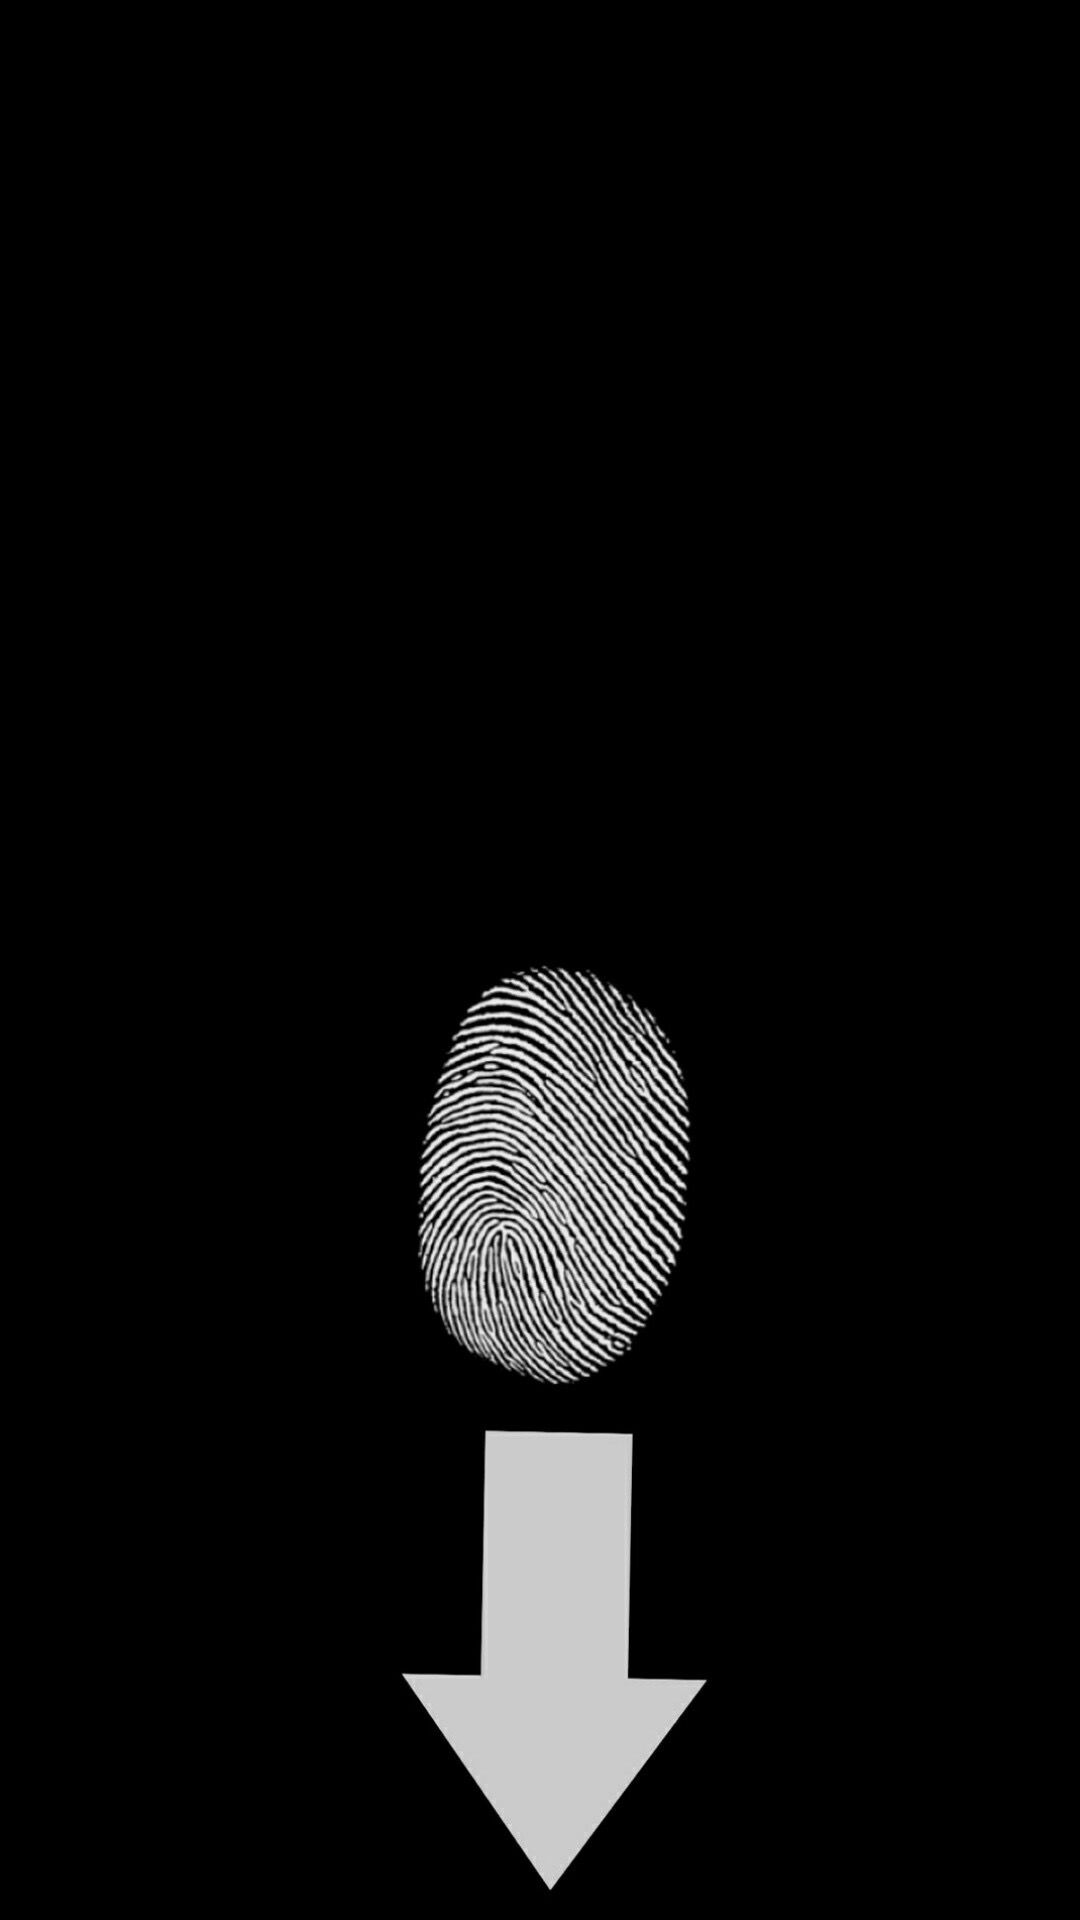 Fingerprint Wallpaper Iphone 7 Wallpaper Ios Latest Wallpaper Dark Wallpaper Lock Screen Wallpaper Iphone Dark Wallpaper Iphone